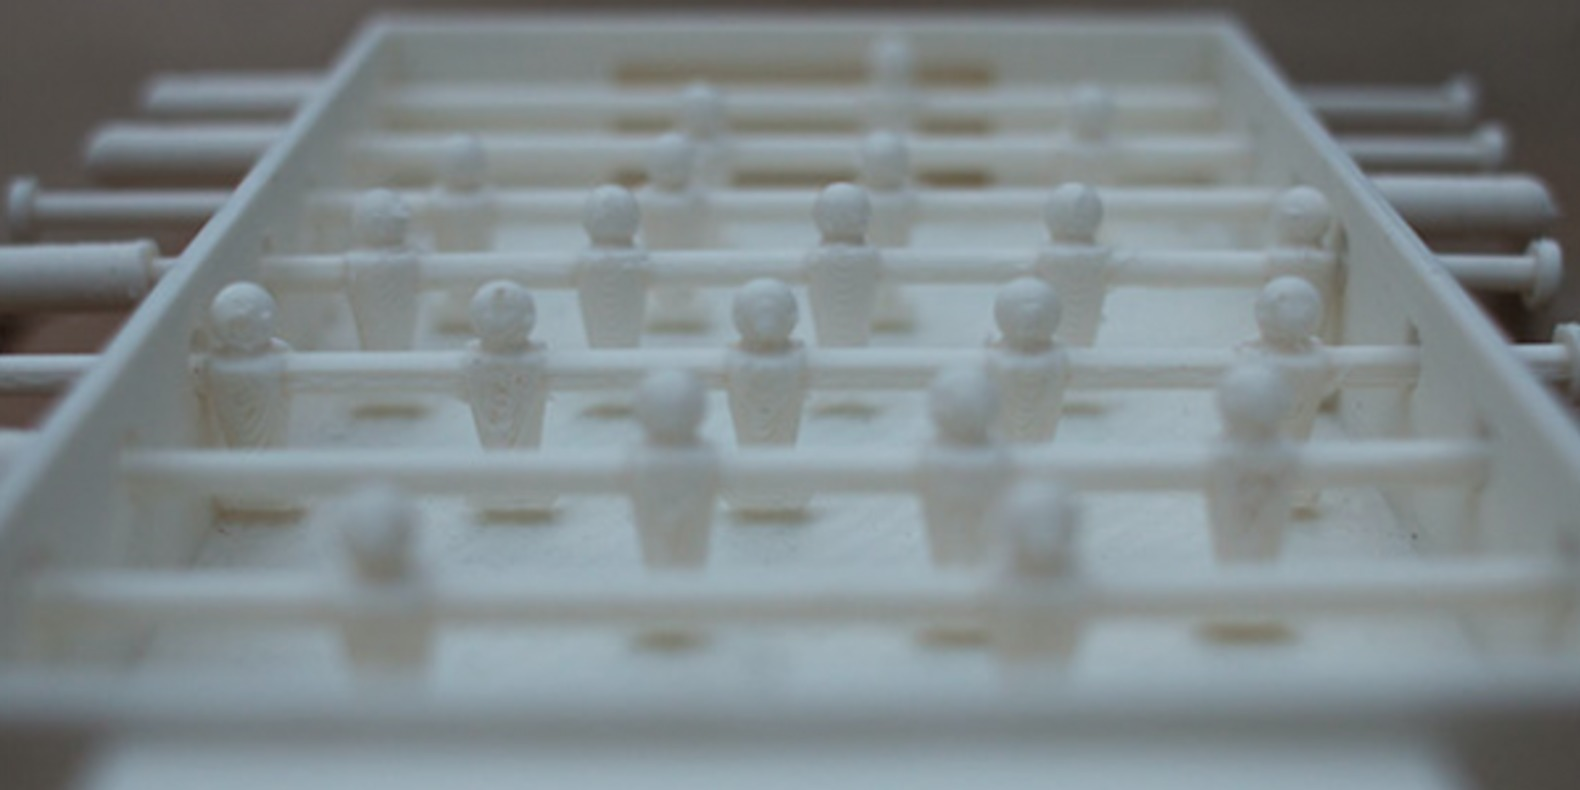 pocket foosball babyfoot fichier 3D cults impression 3D 3D printed 4